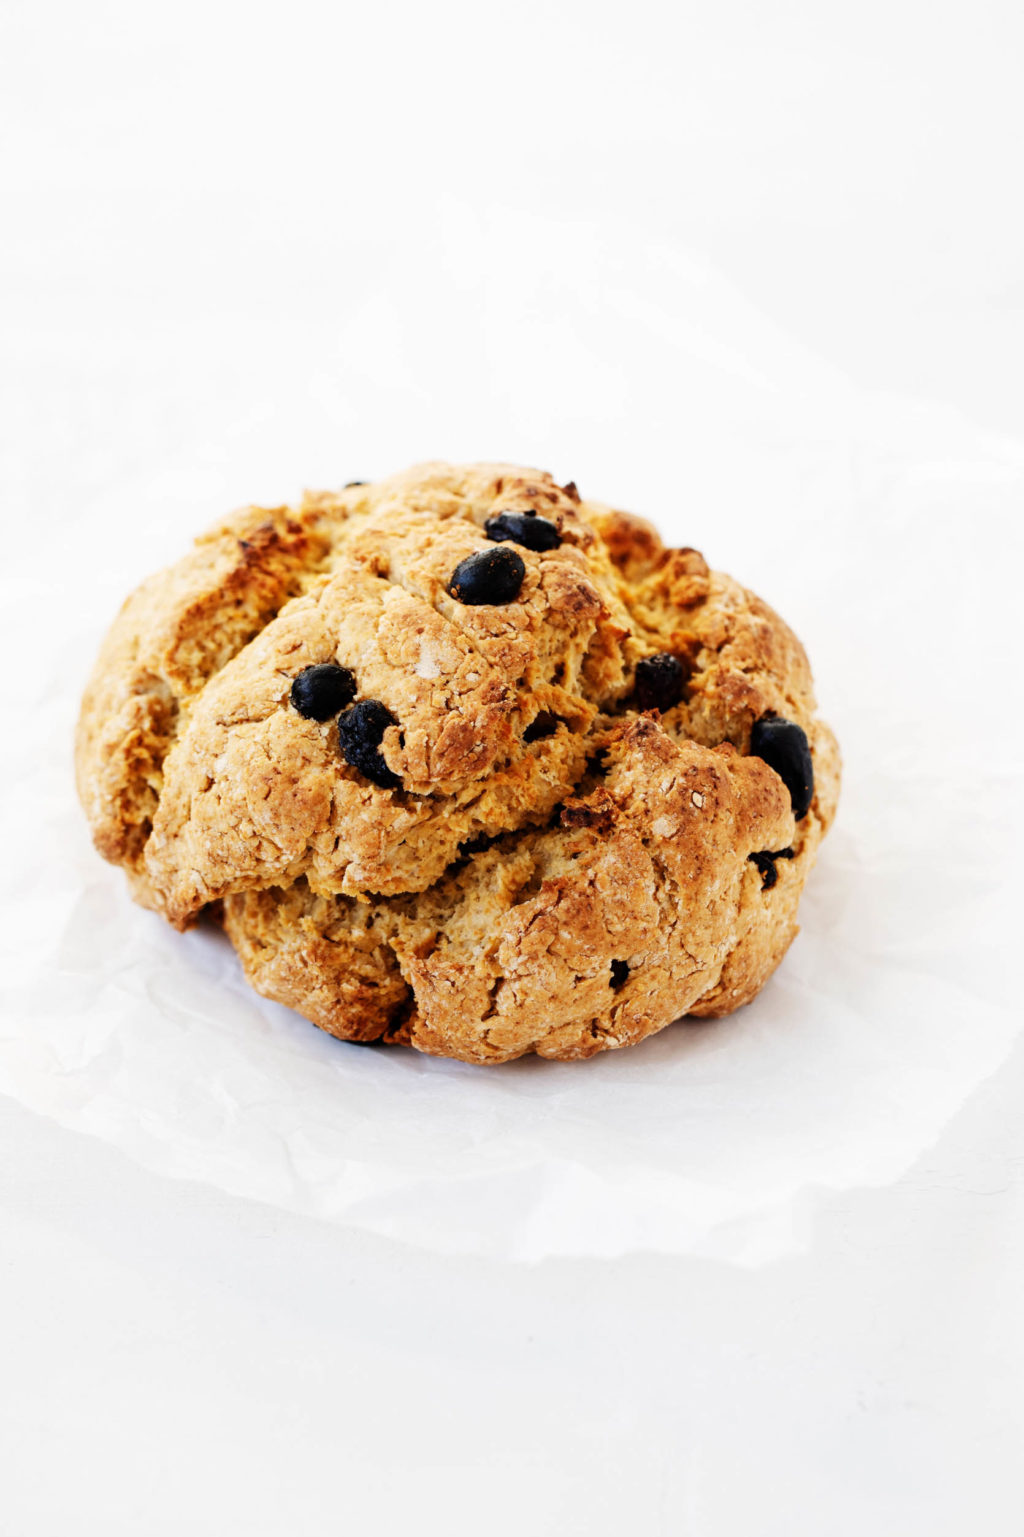 A round, rustic quick bread has been studded with currants and laid out on a sheet of white parchment paper.